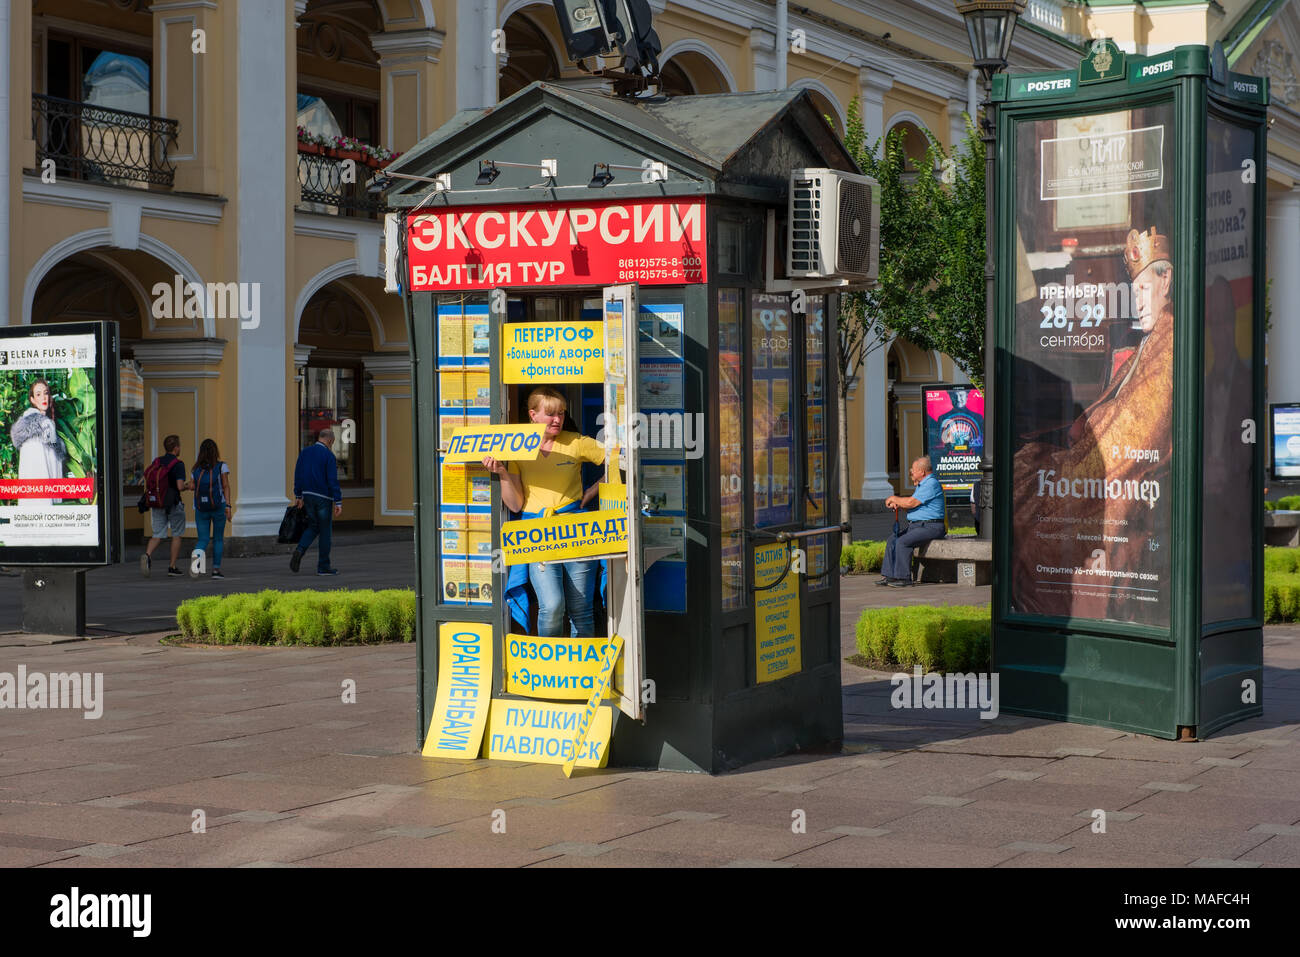 RUSSIA, SAINT PETERSBURG - AUGUST 18, 2017: Point for the sale of sightseeing tours on Nevsky Prospekt St. Petersburg - Stock Image